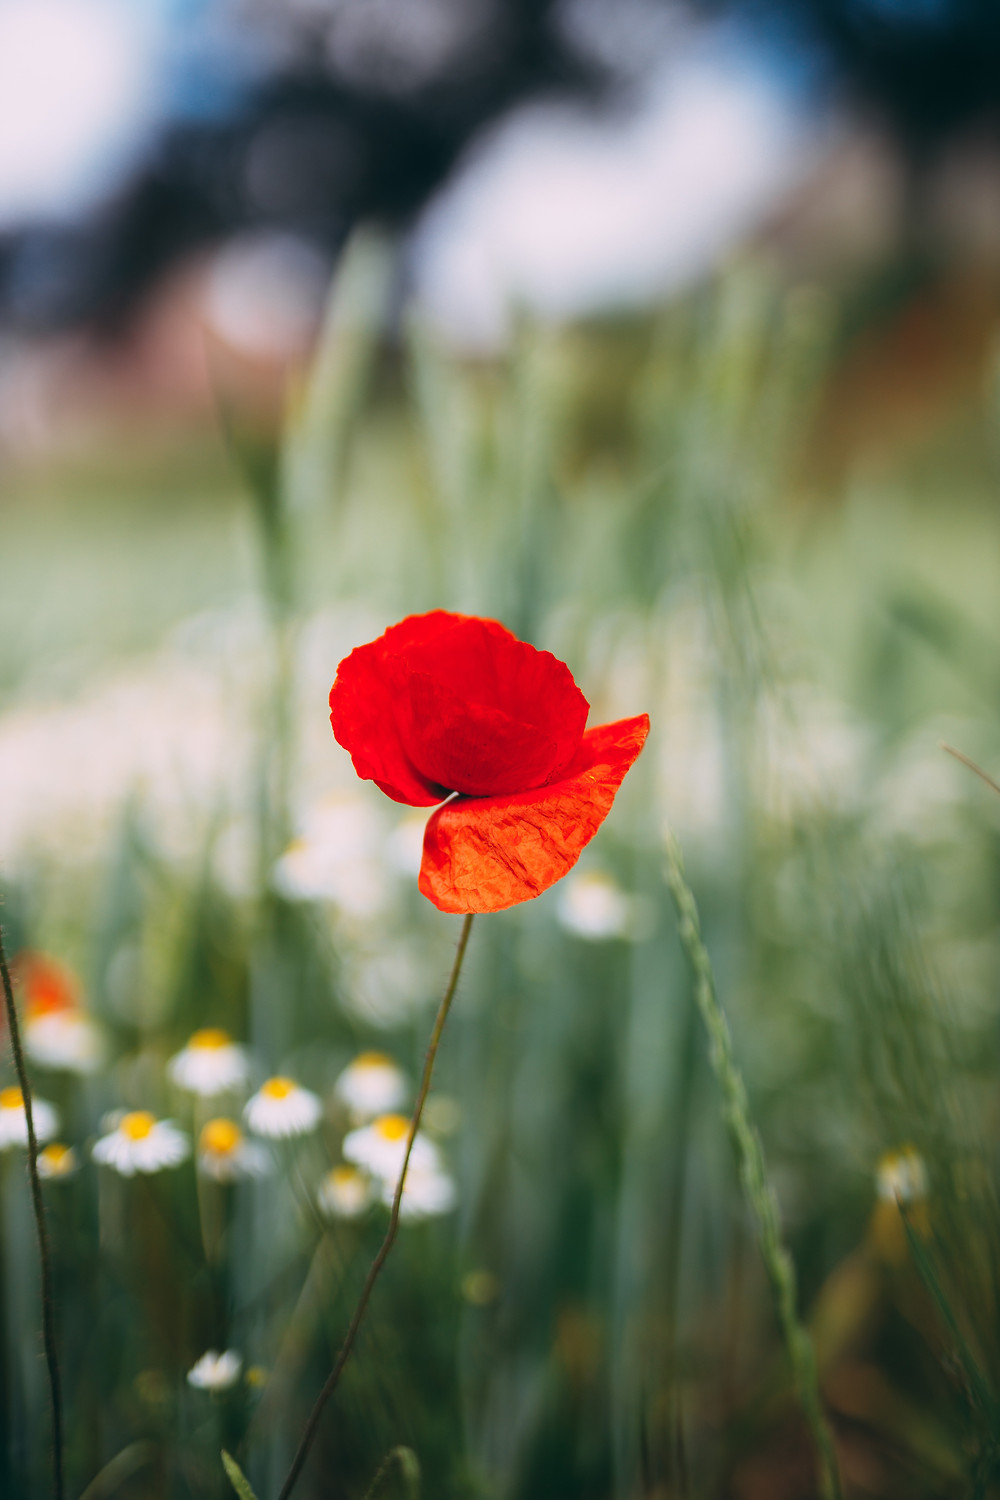 close up of a red flower in nature with grass and trees in the distance behind it